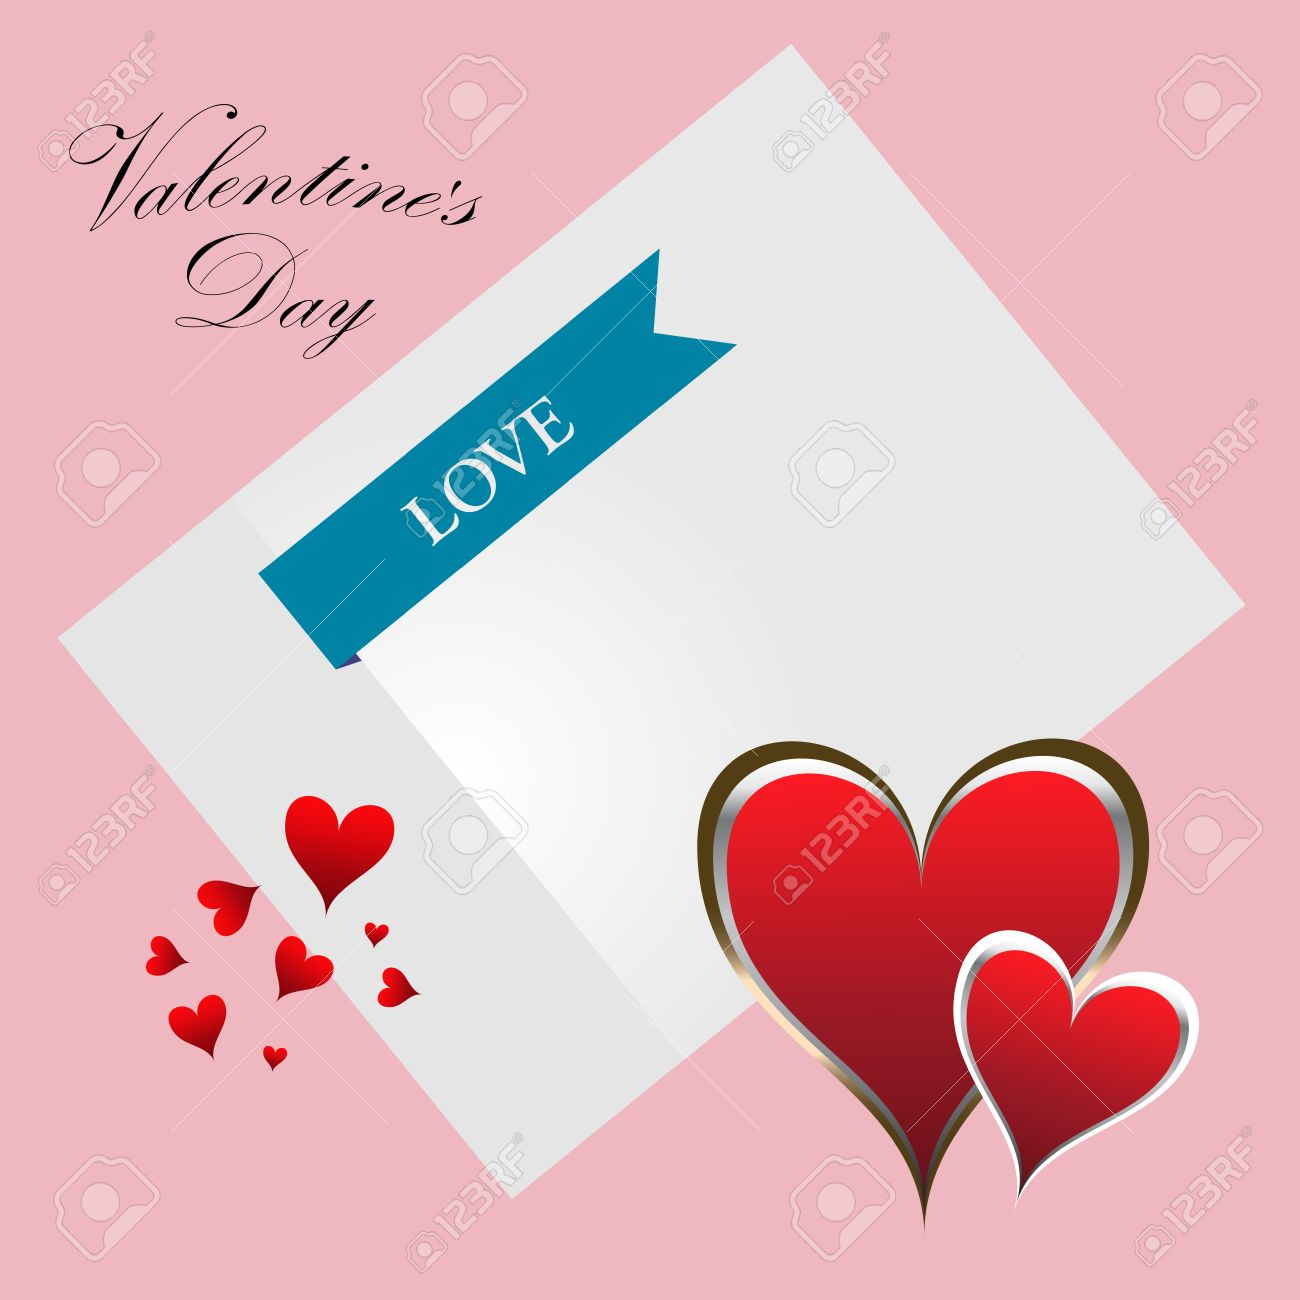 Love Letter Mail Valentines Day Flyer Valentines Day Card